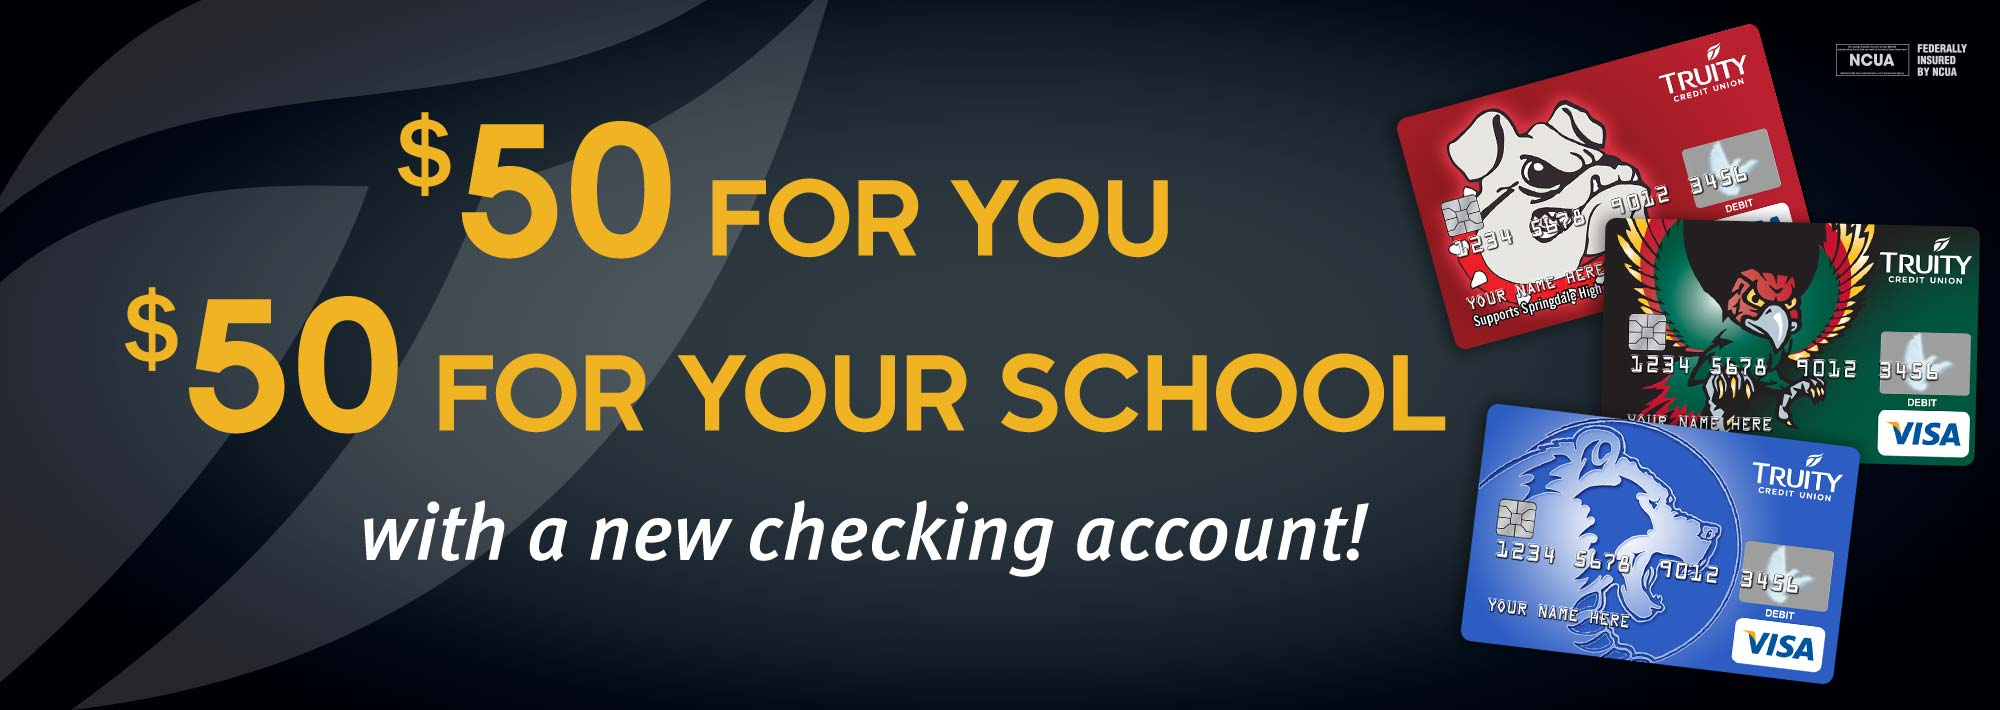 $50 for you, $50 for your school with a new checking account. See details.